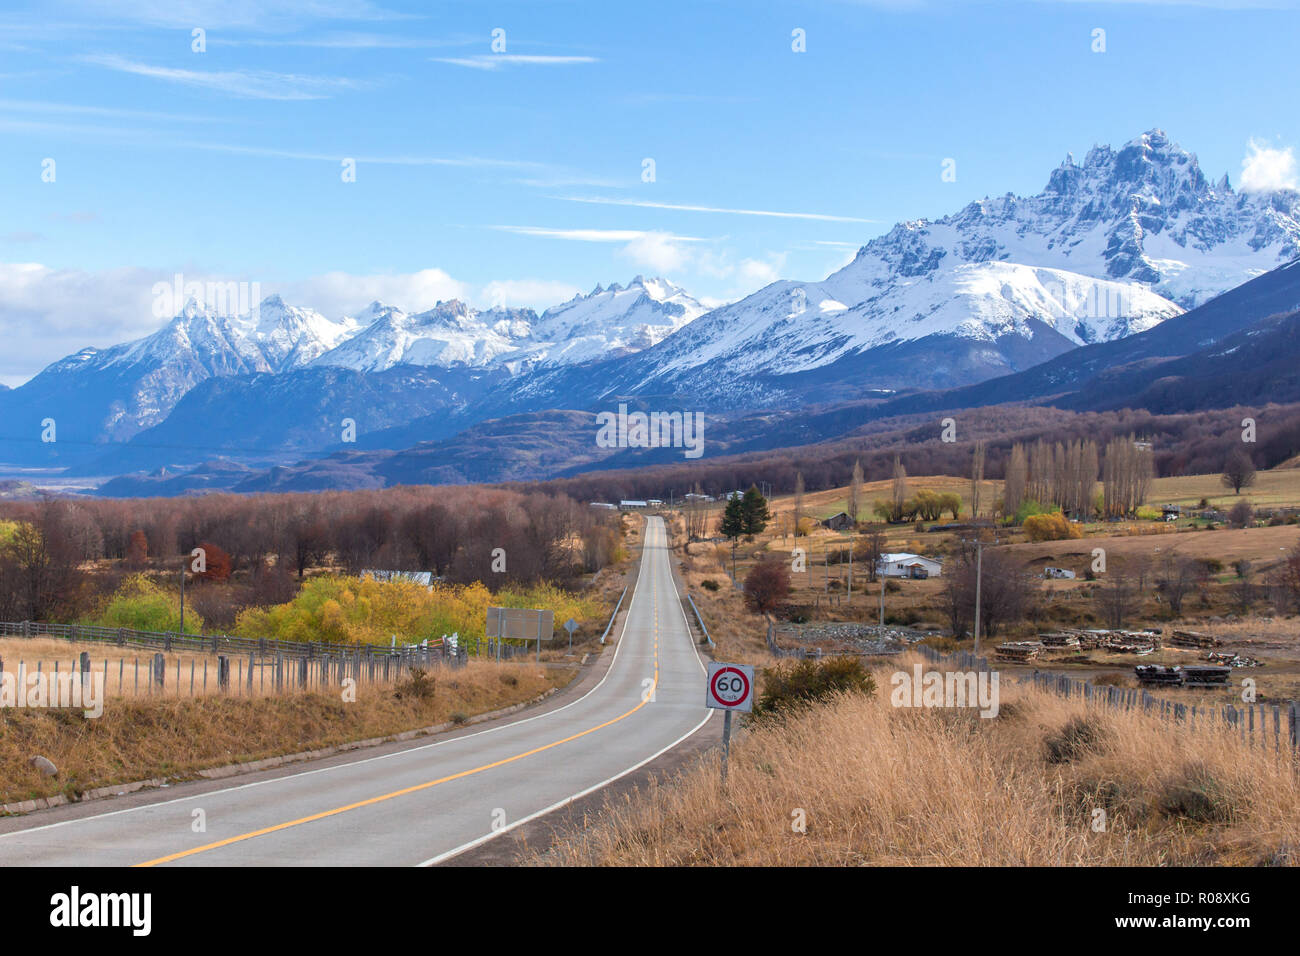 the route 7, known as the Austral Route or Carretera Austral, here with the andes moutains at the back near the city of Villa Cerro Castillo - Stock Image